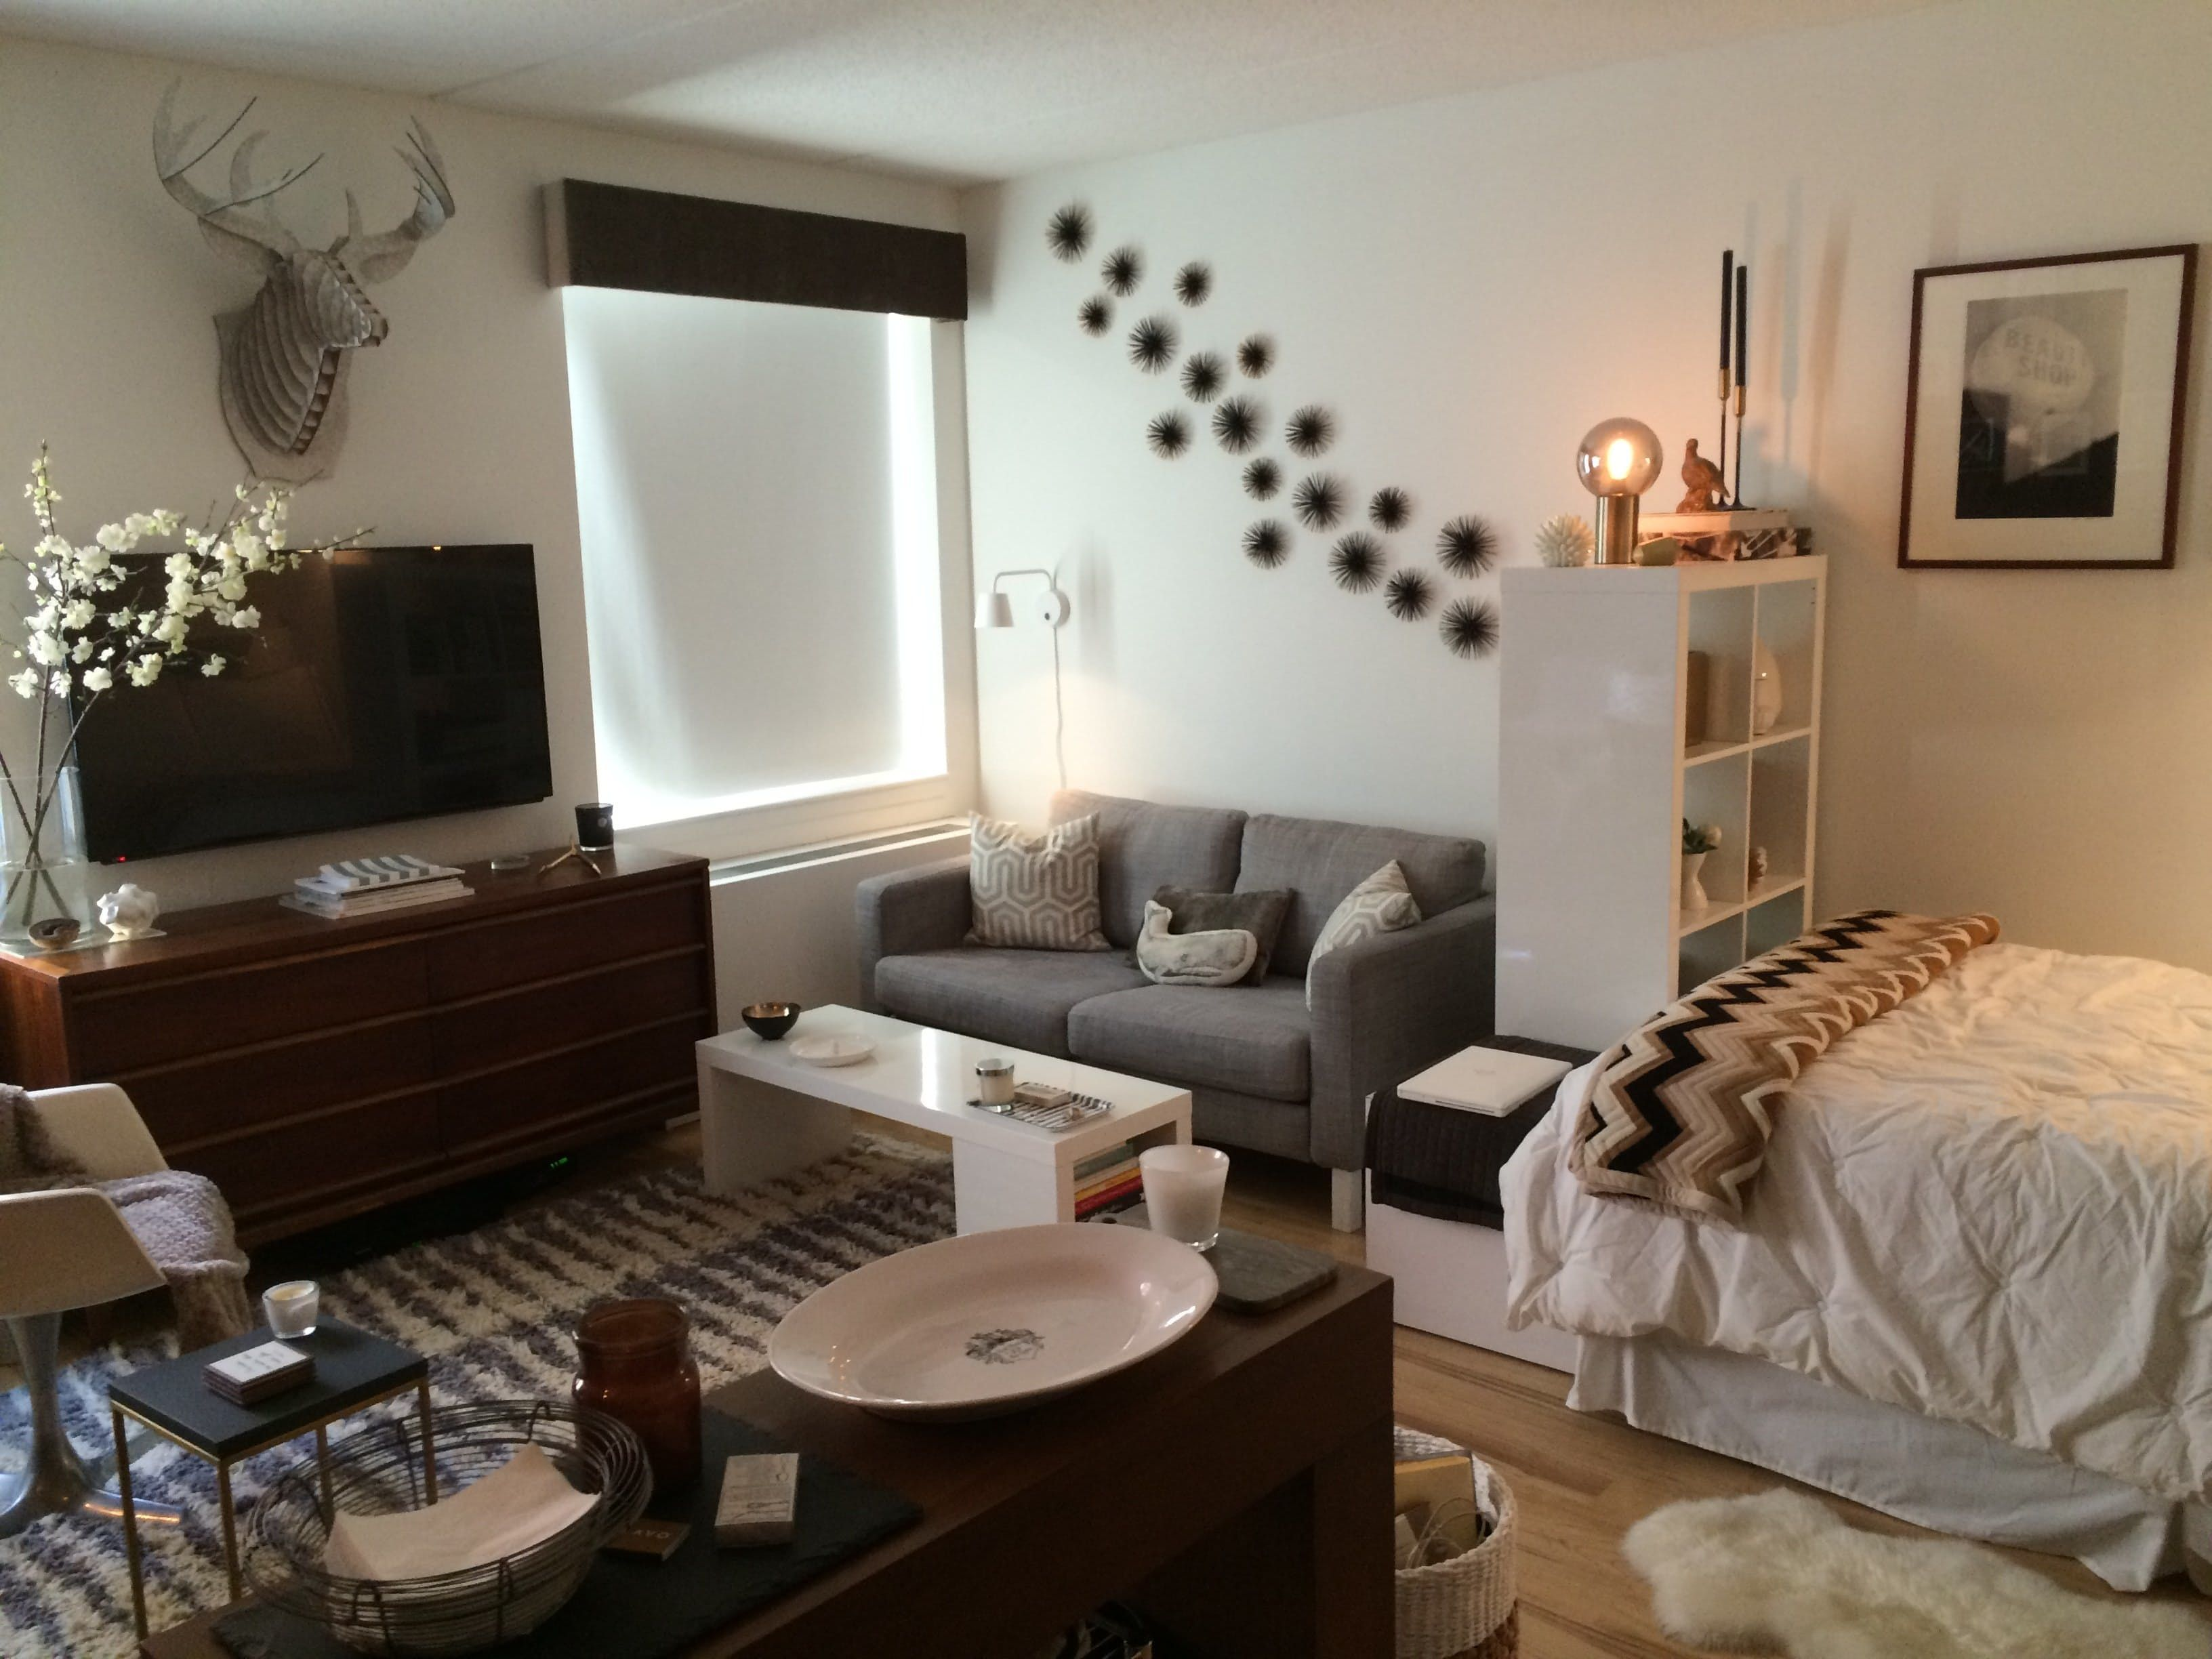 Ikea living room apartment - 5 Studio Apartment Layouts That Work